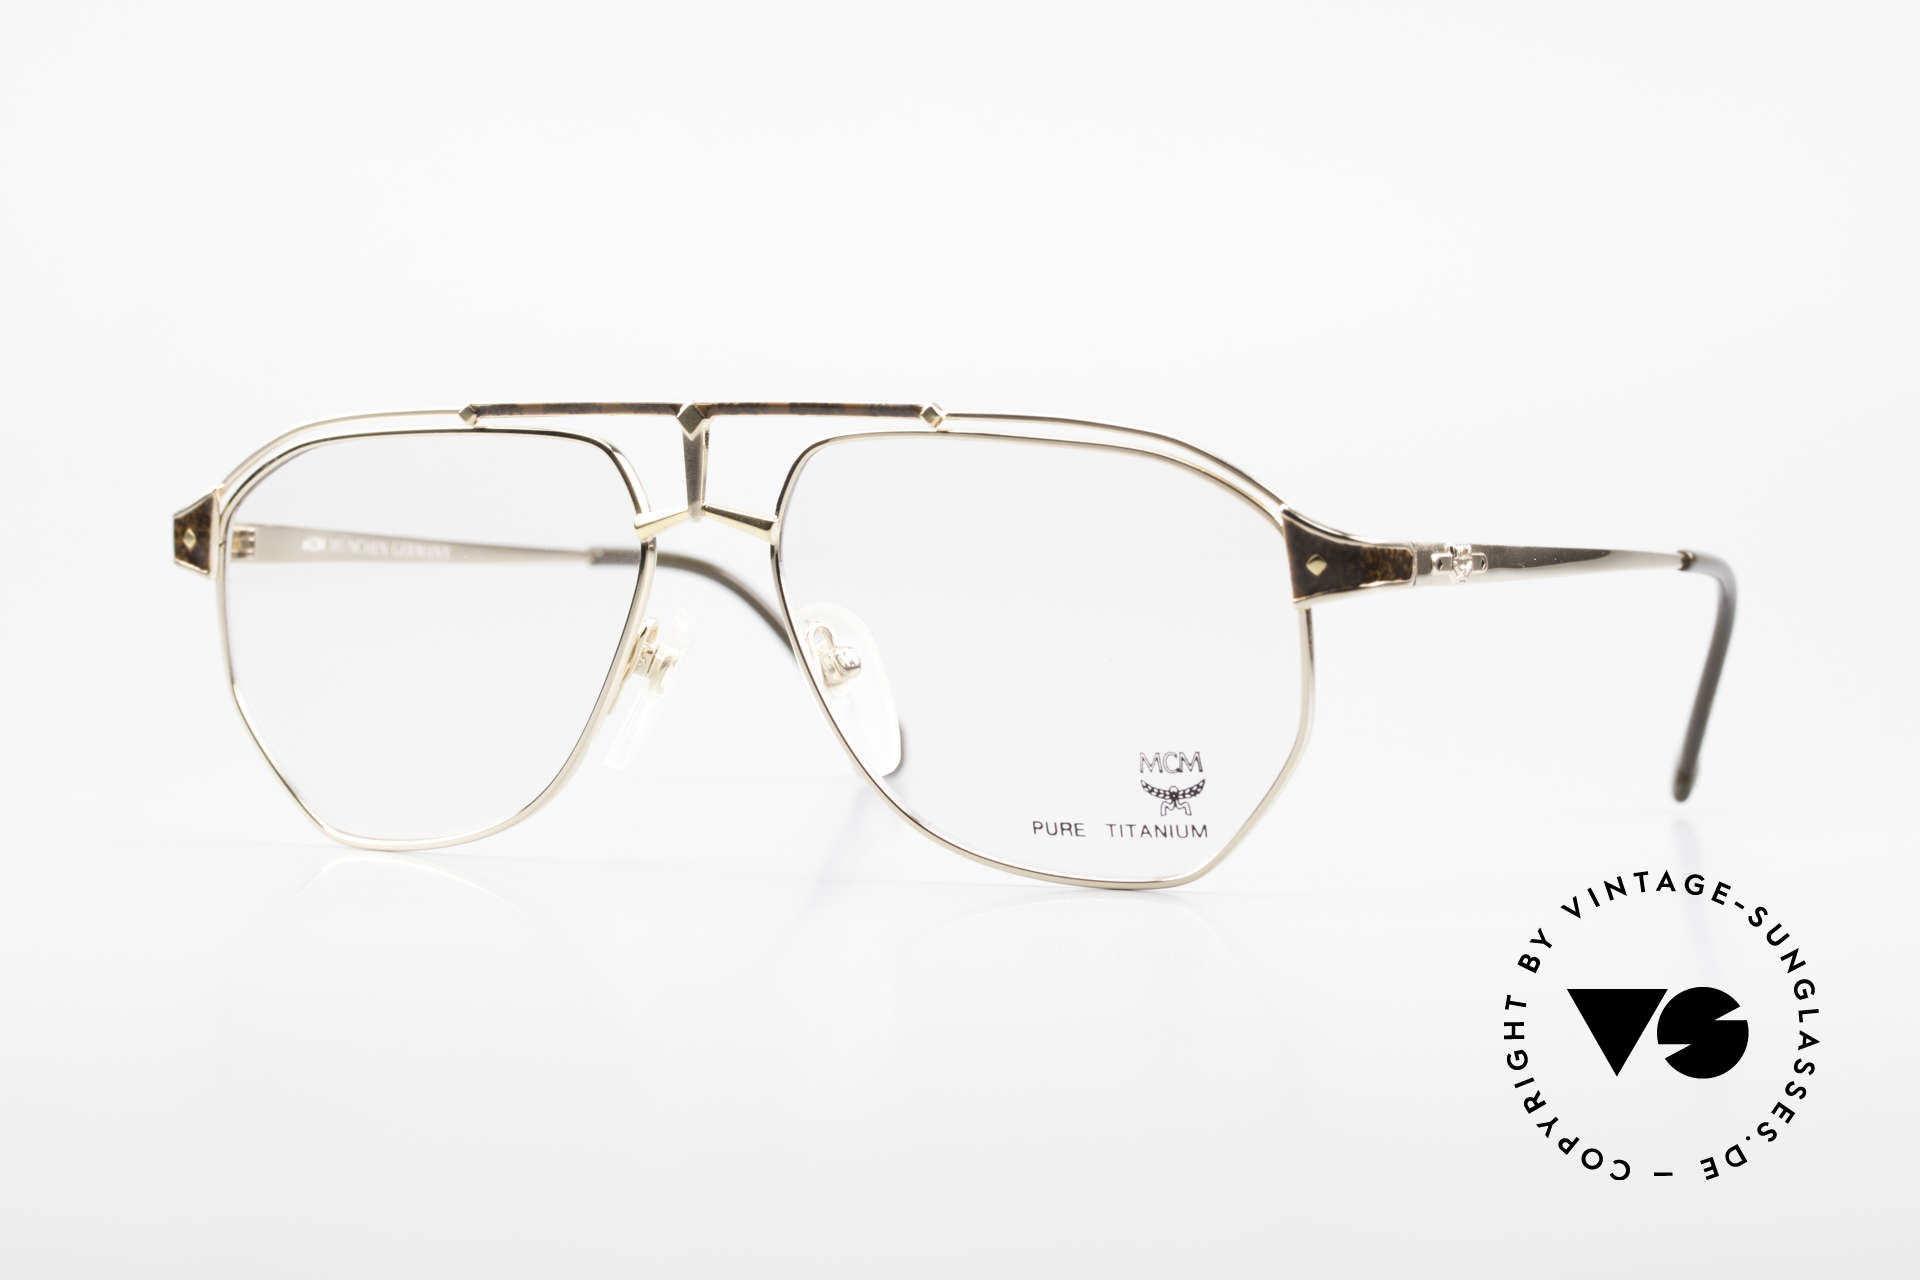 MCM München 6 XL 90's Luxury Vintage Glasses, extra large designer glasses by MCM of the early 90's, Made for Men